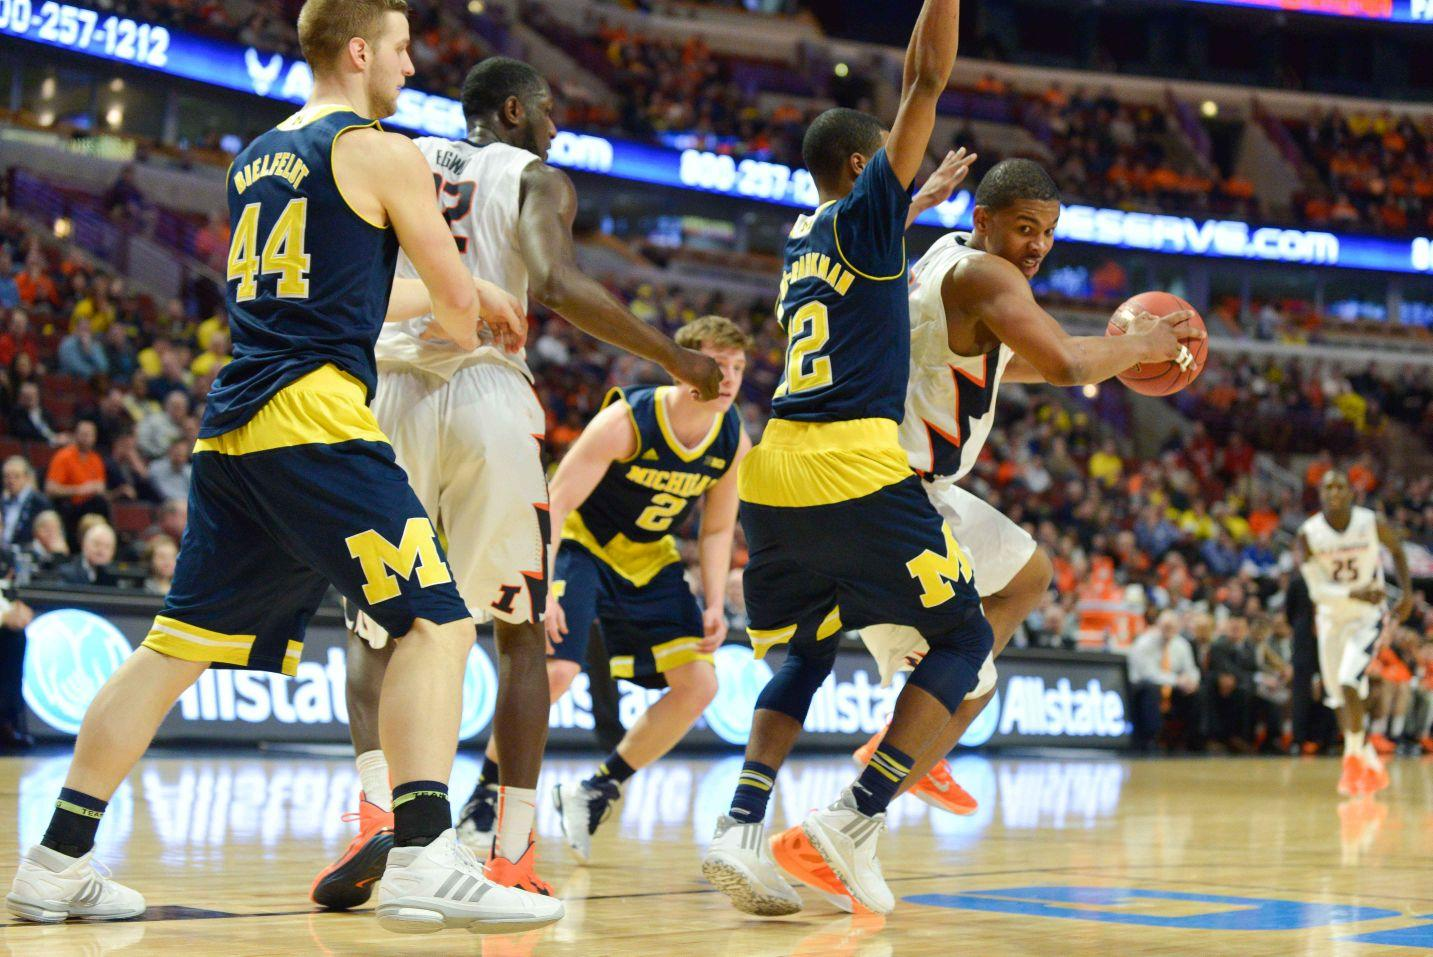 %C2%A0The+Illini+took+a+beating+against+Michigan%2C+losing+73-55+at+the+United+Center+in+Chicago.